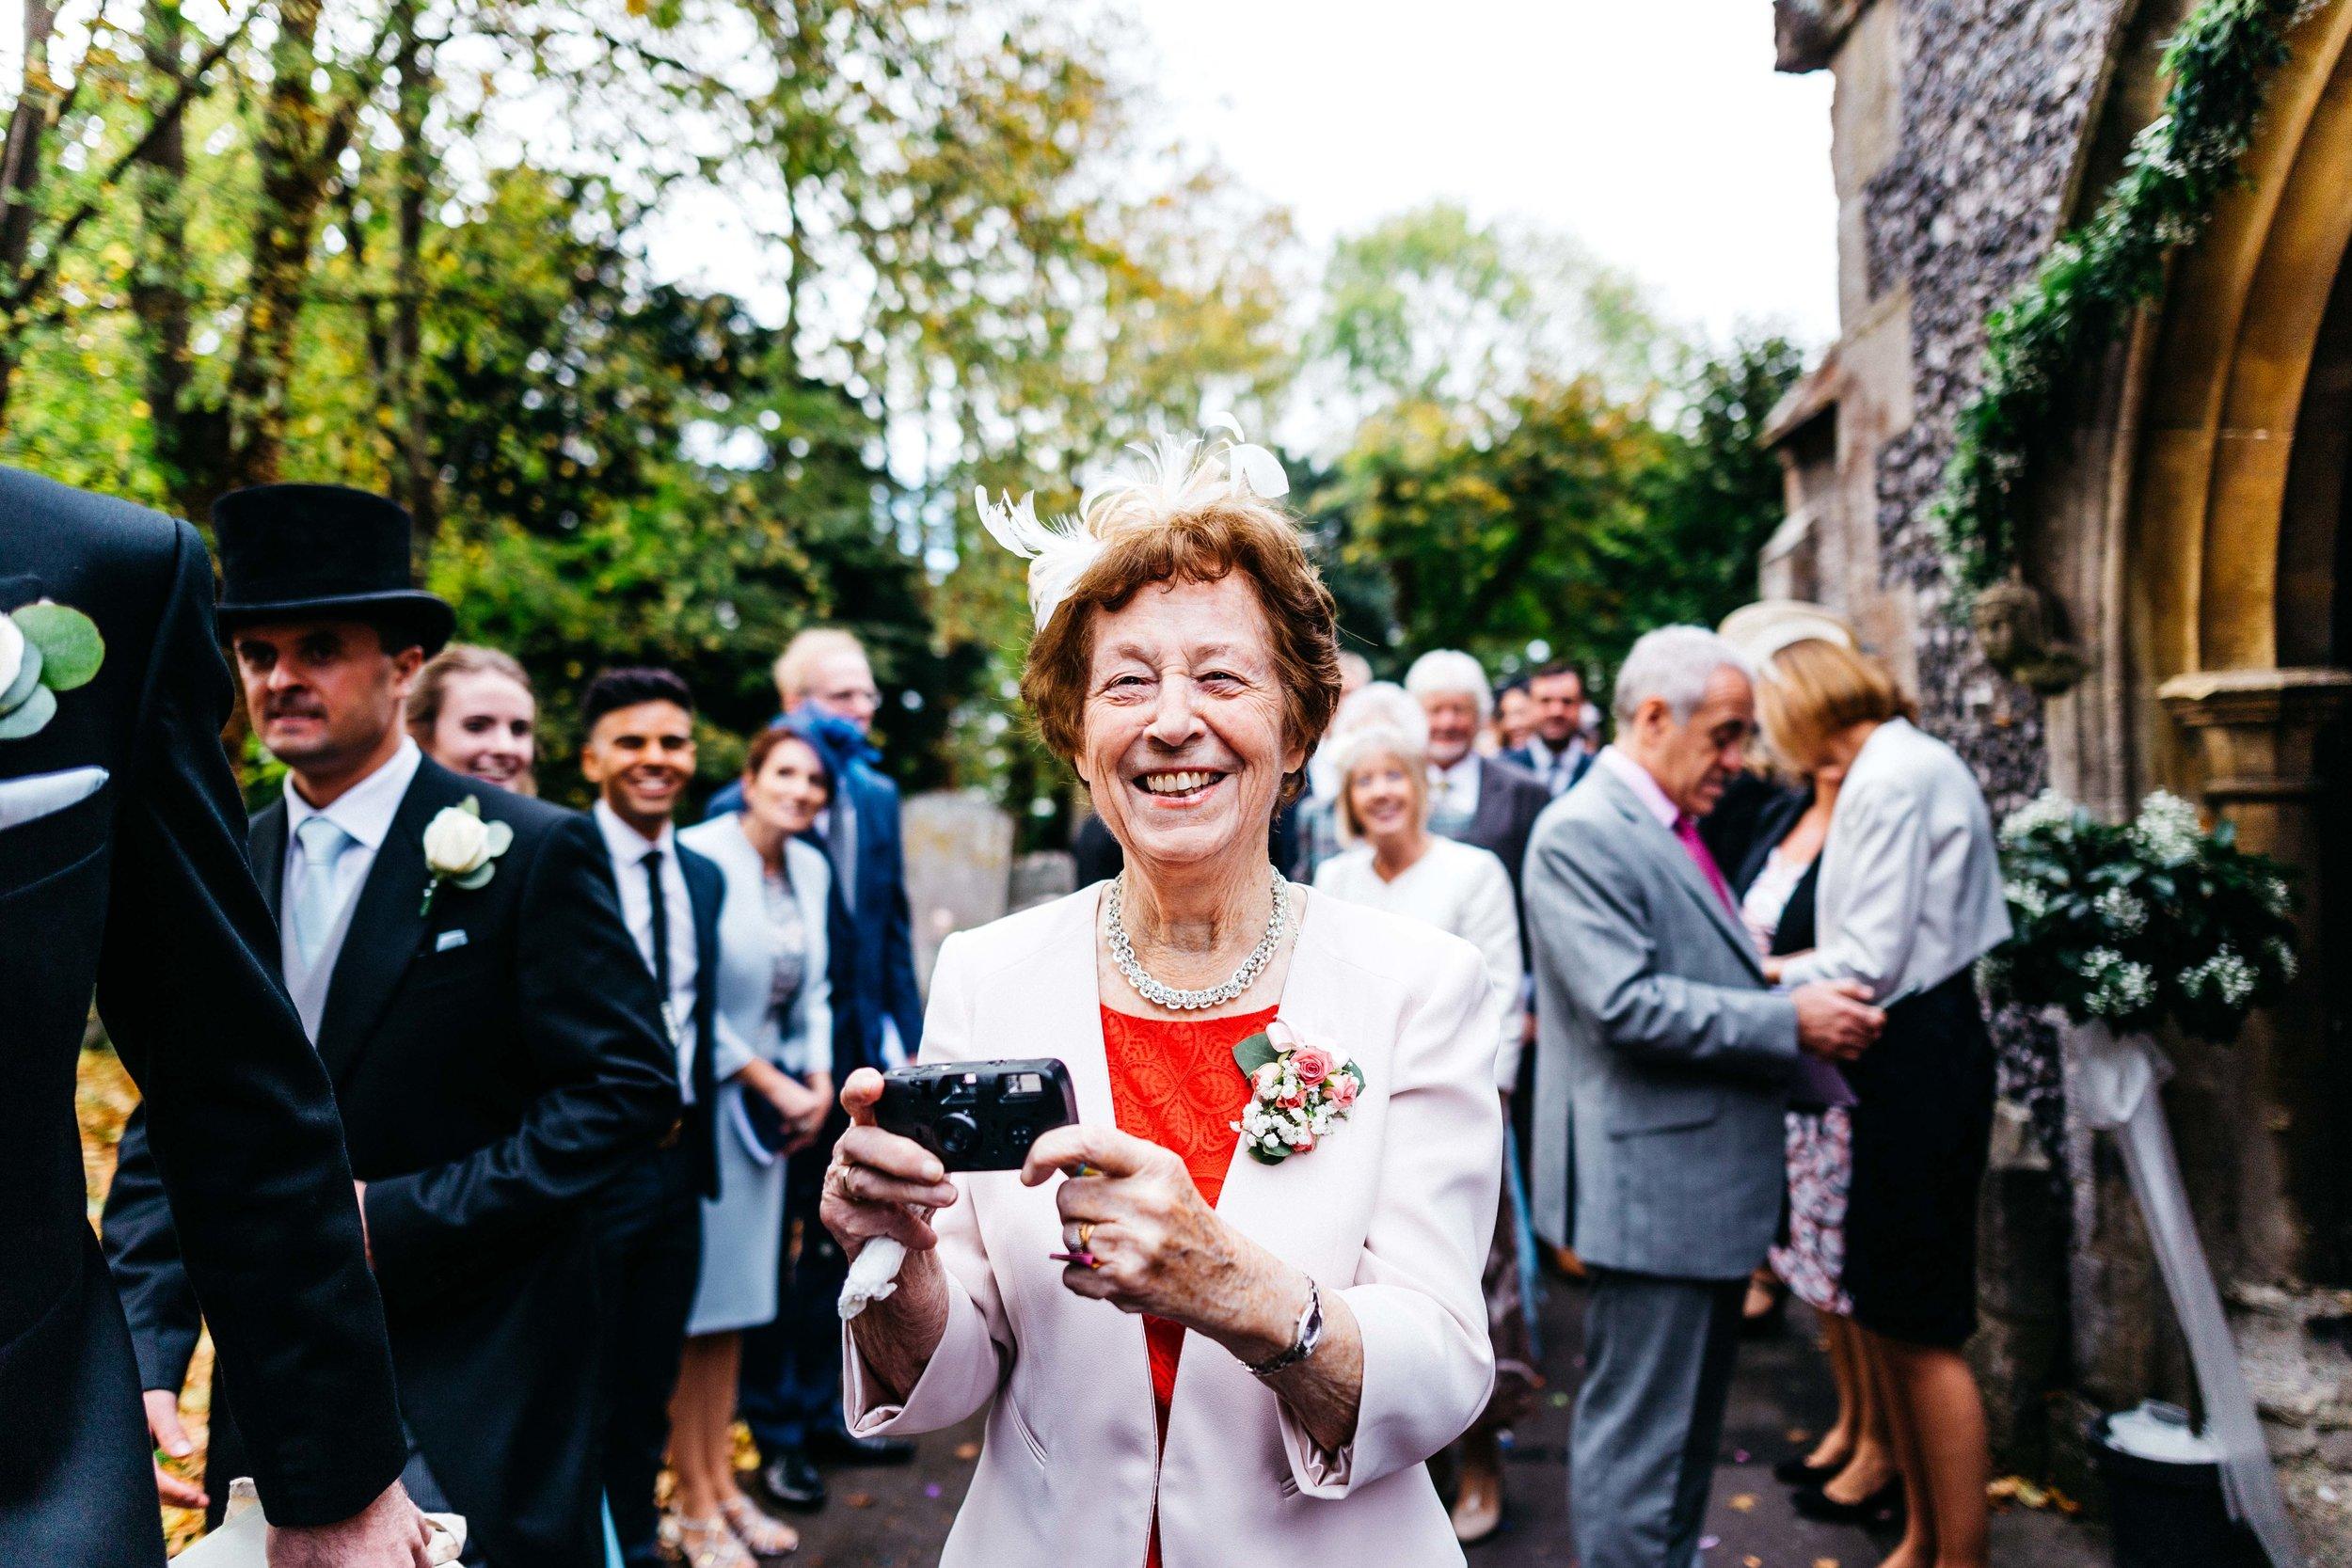 Aunty and her camera